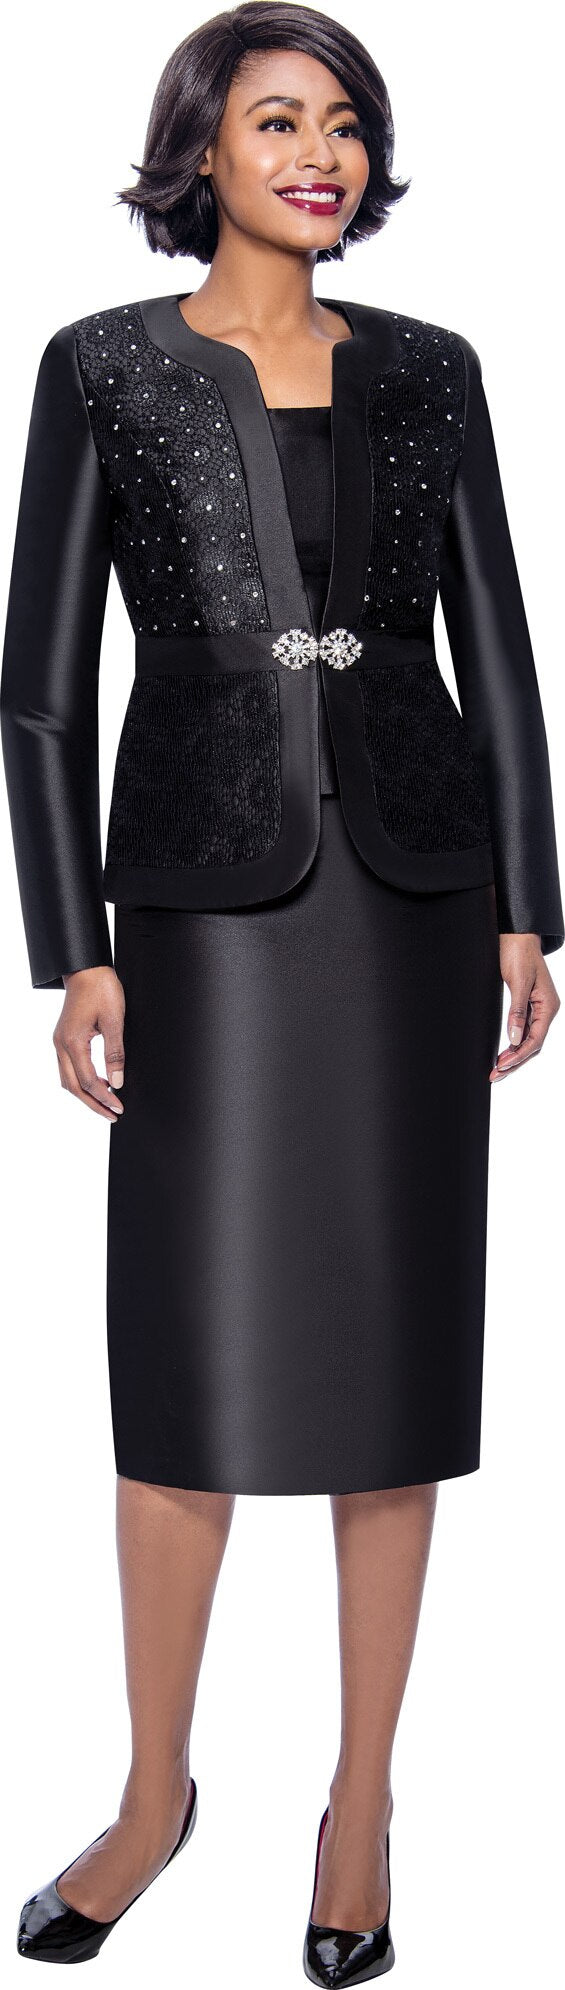 Terramina Suit 7726-Black - Church Suits For Less